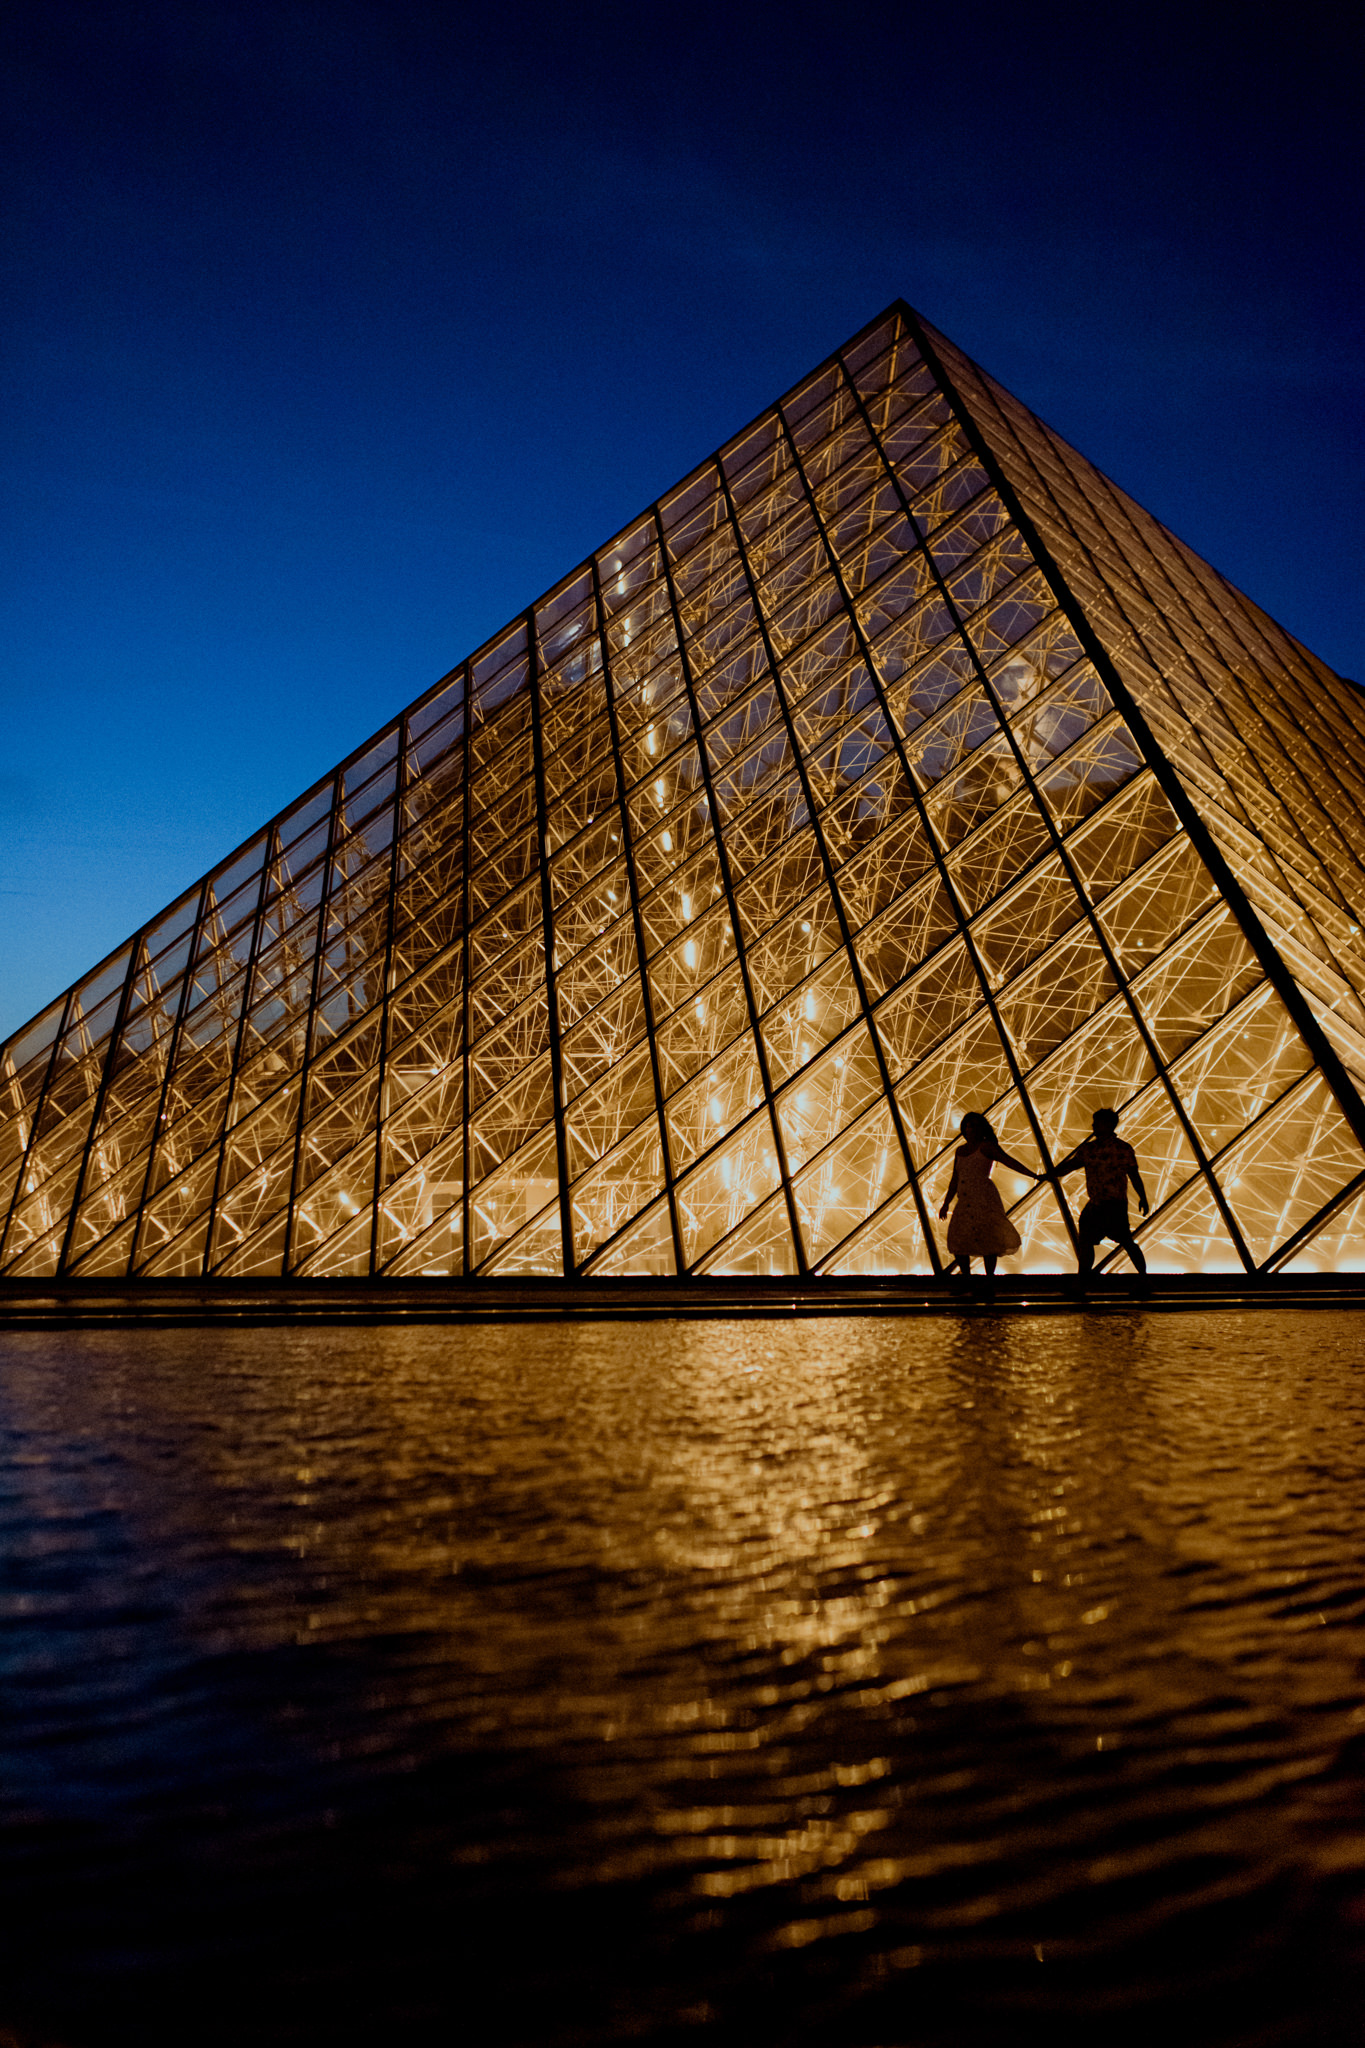 Silhouette of a man and a woman holding hands and walking in front of the Louvre Pyramids.